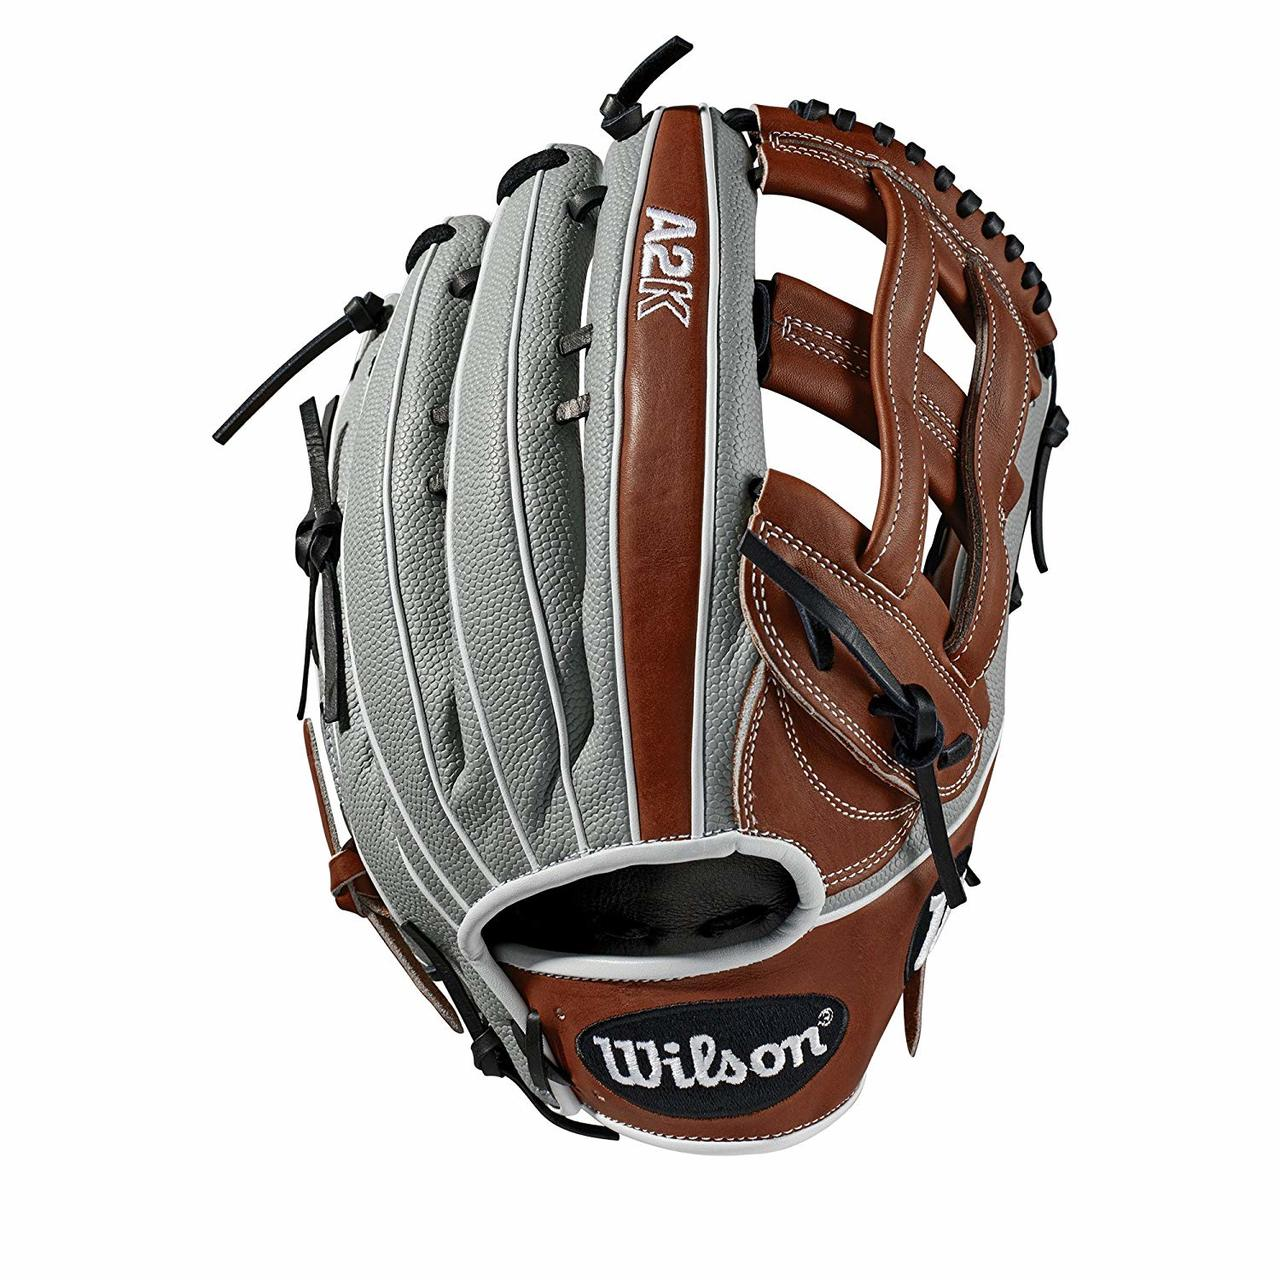 wilson-2019-a2k-superskin-1799-baseball-glove-12-75-right-hand-throw WTA2KRB191799SS-RightHandThrow  887768701857 Outfield model; dual post web; available in right- and left-hand Throw